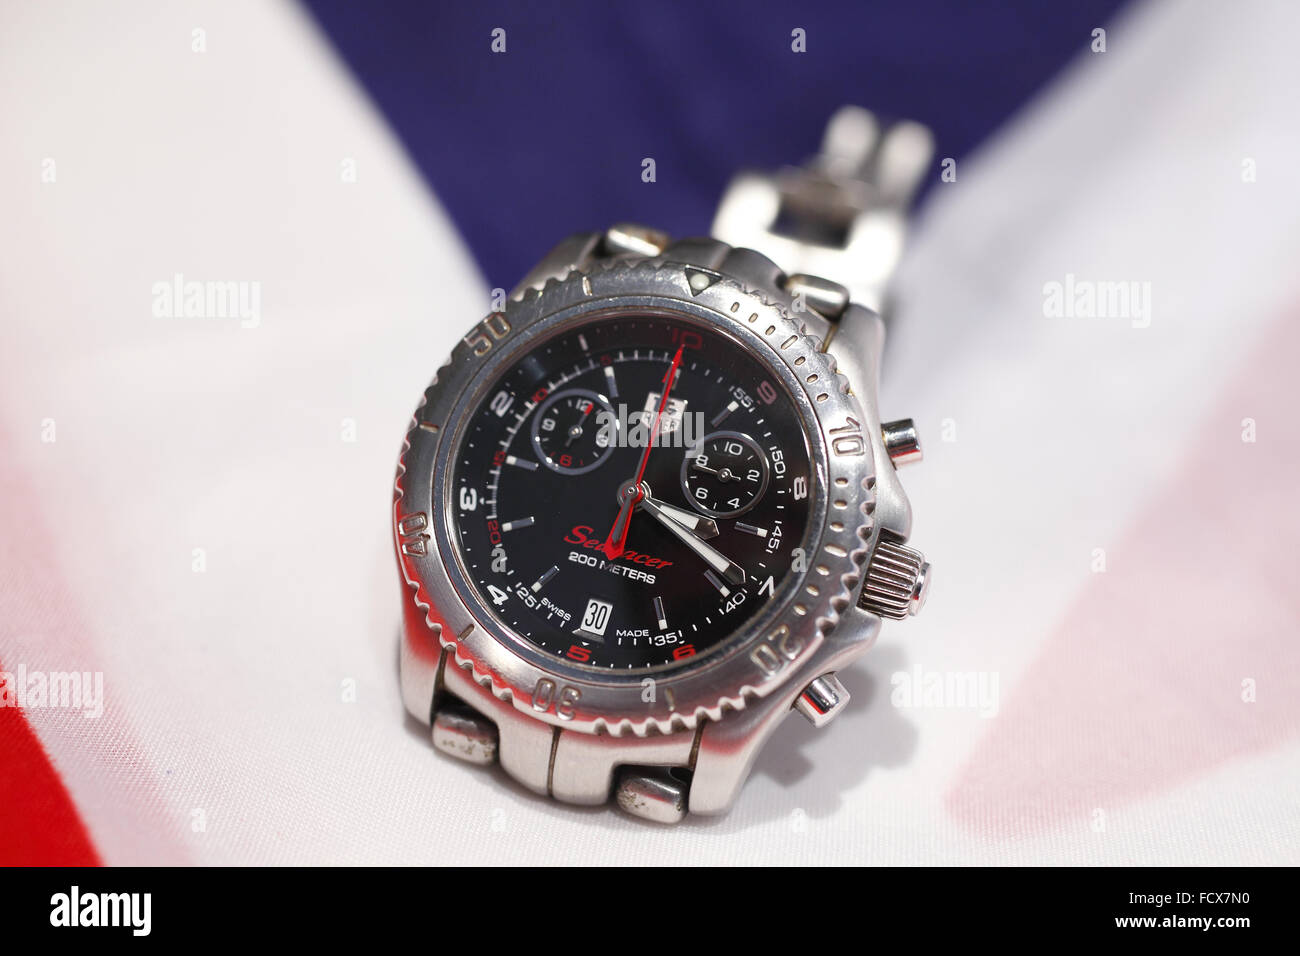 TAG Heuer - Searacer, sports chronography - Stock Image